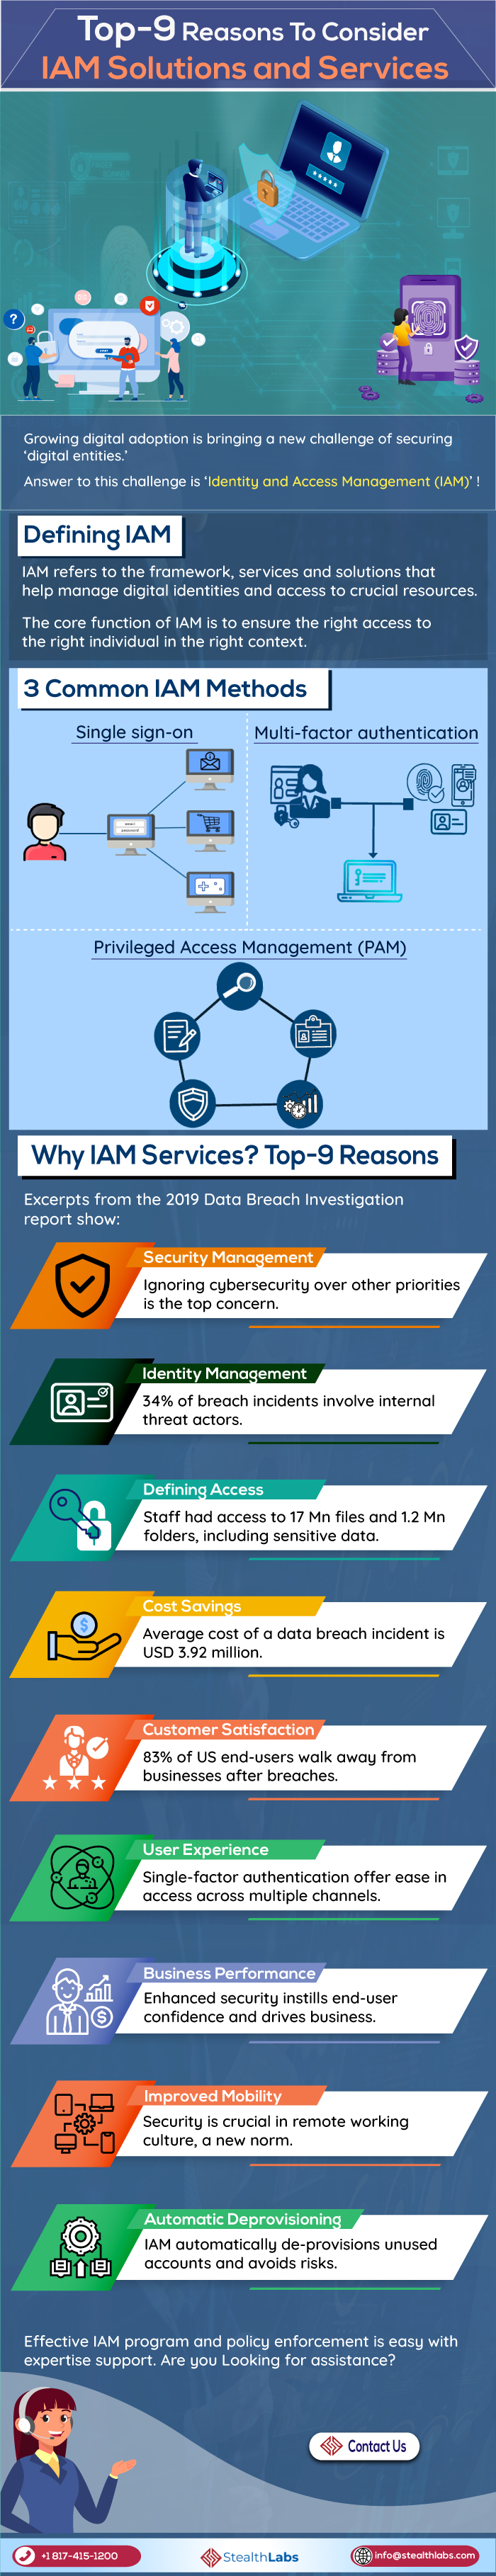 Infographic: Top-9 Reasons To Consider IAM Solutions and Services